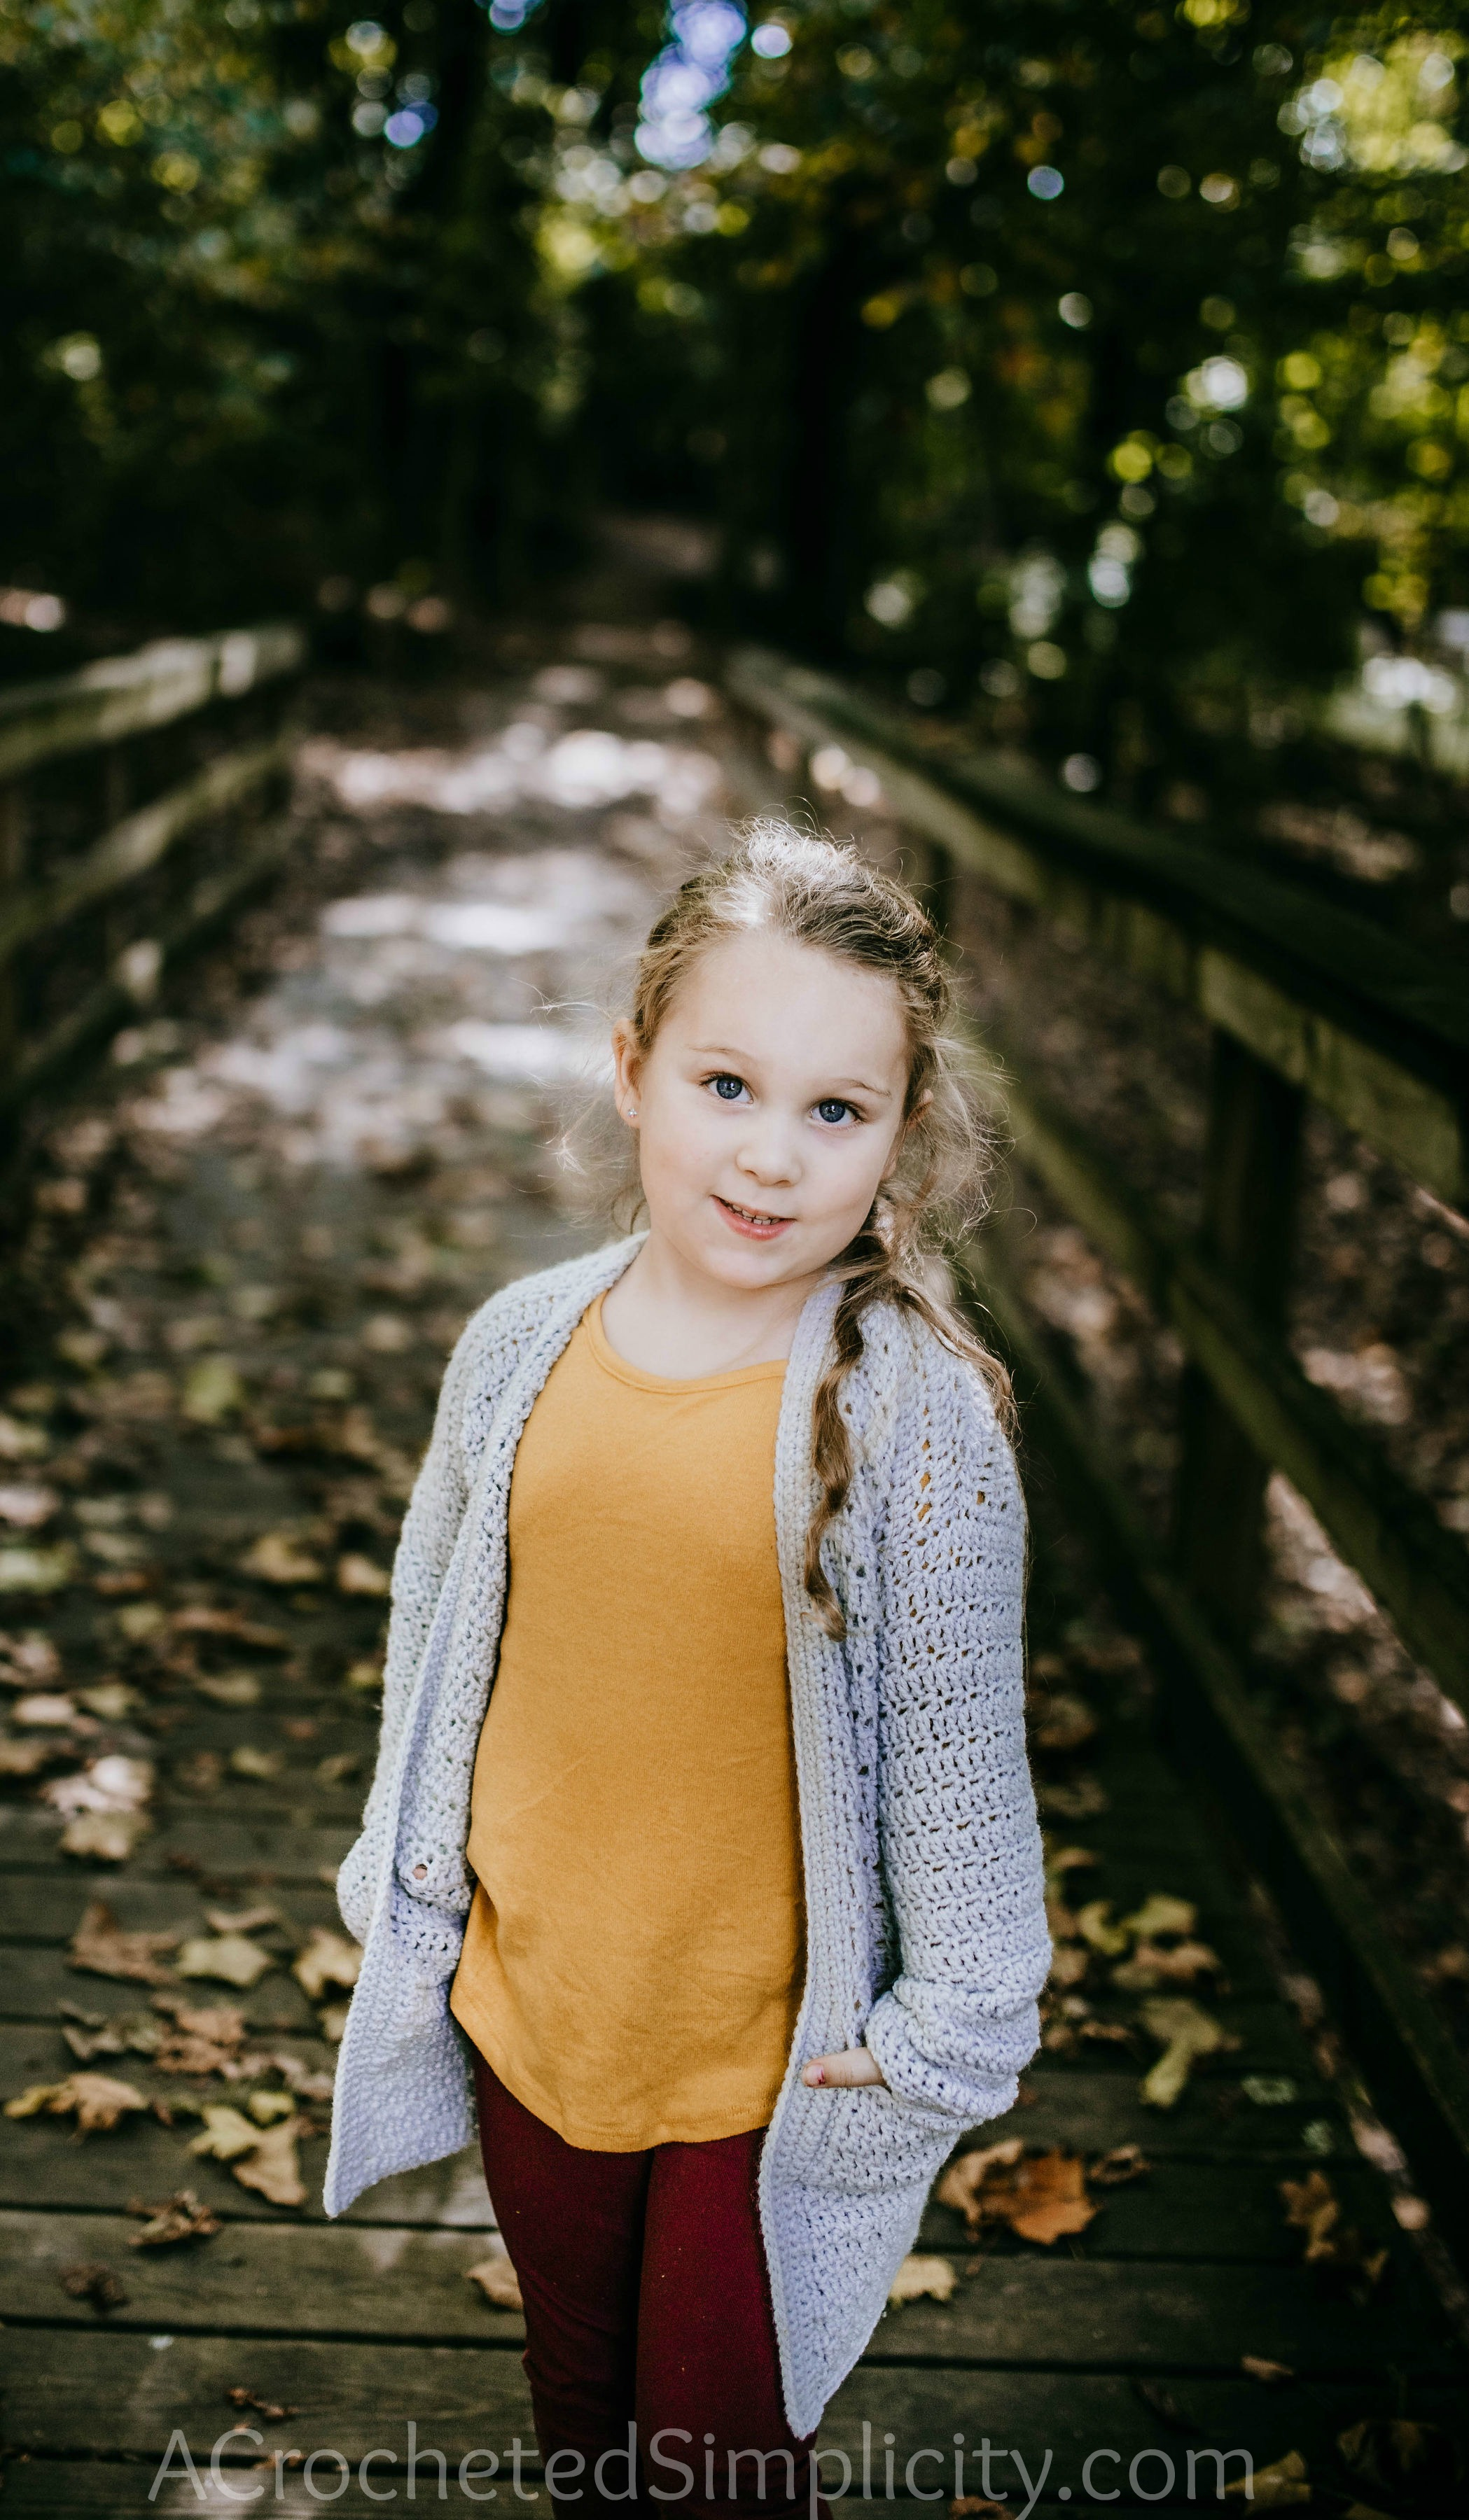 Free Crochet Cardigan Pattern - Aurora Cardigan for Girls by A Crocheted Simplicity #crochet #crochetcardigan #crochetcardiganpattern #freecrochetpattern #crochetsweater #crochetgirlscardigan